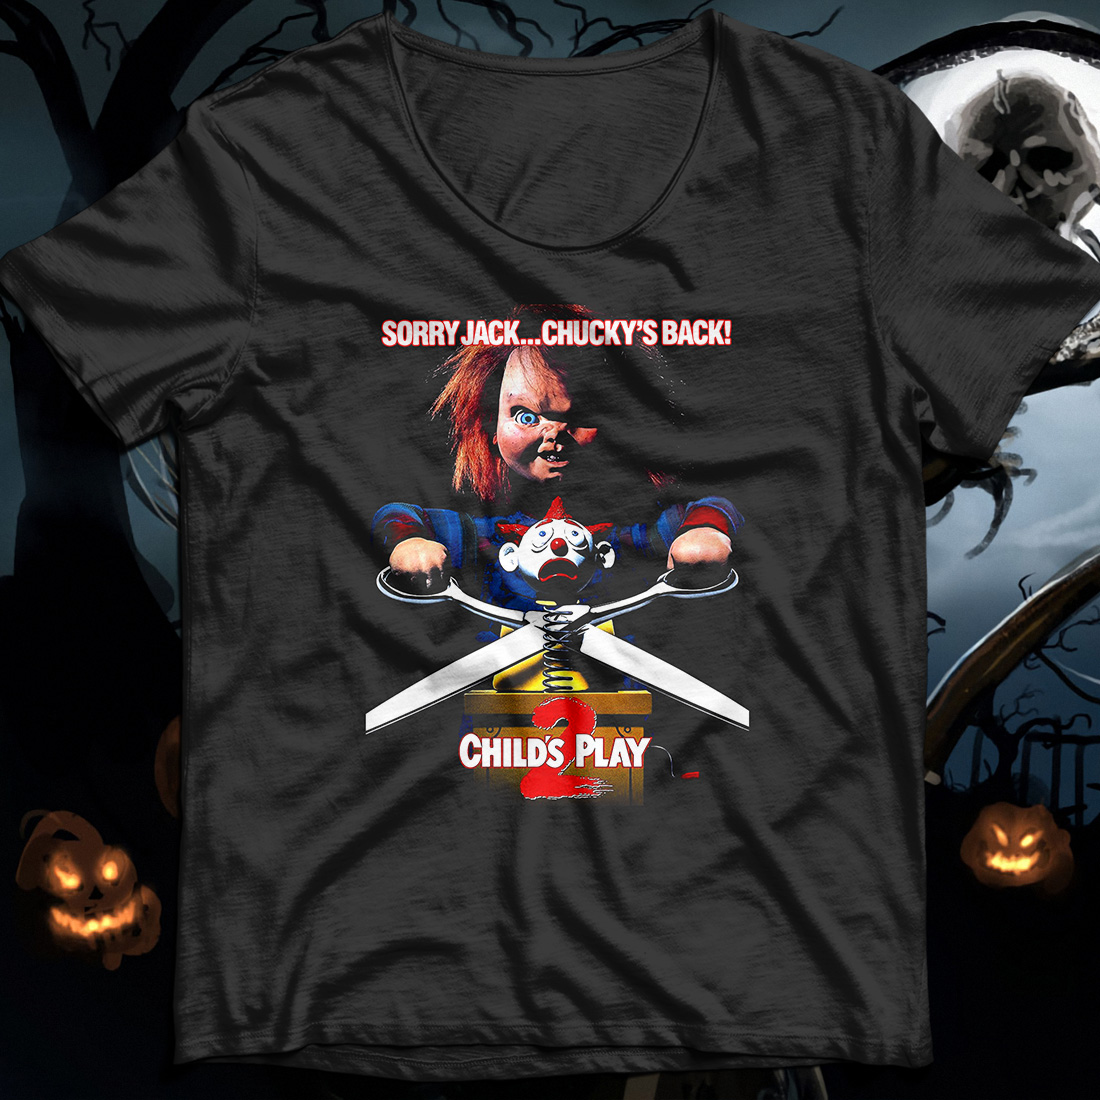 Sorry Jack Chucky's back child's play shirt